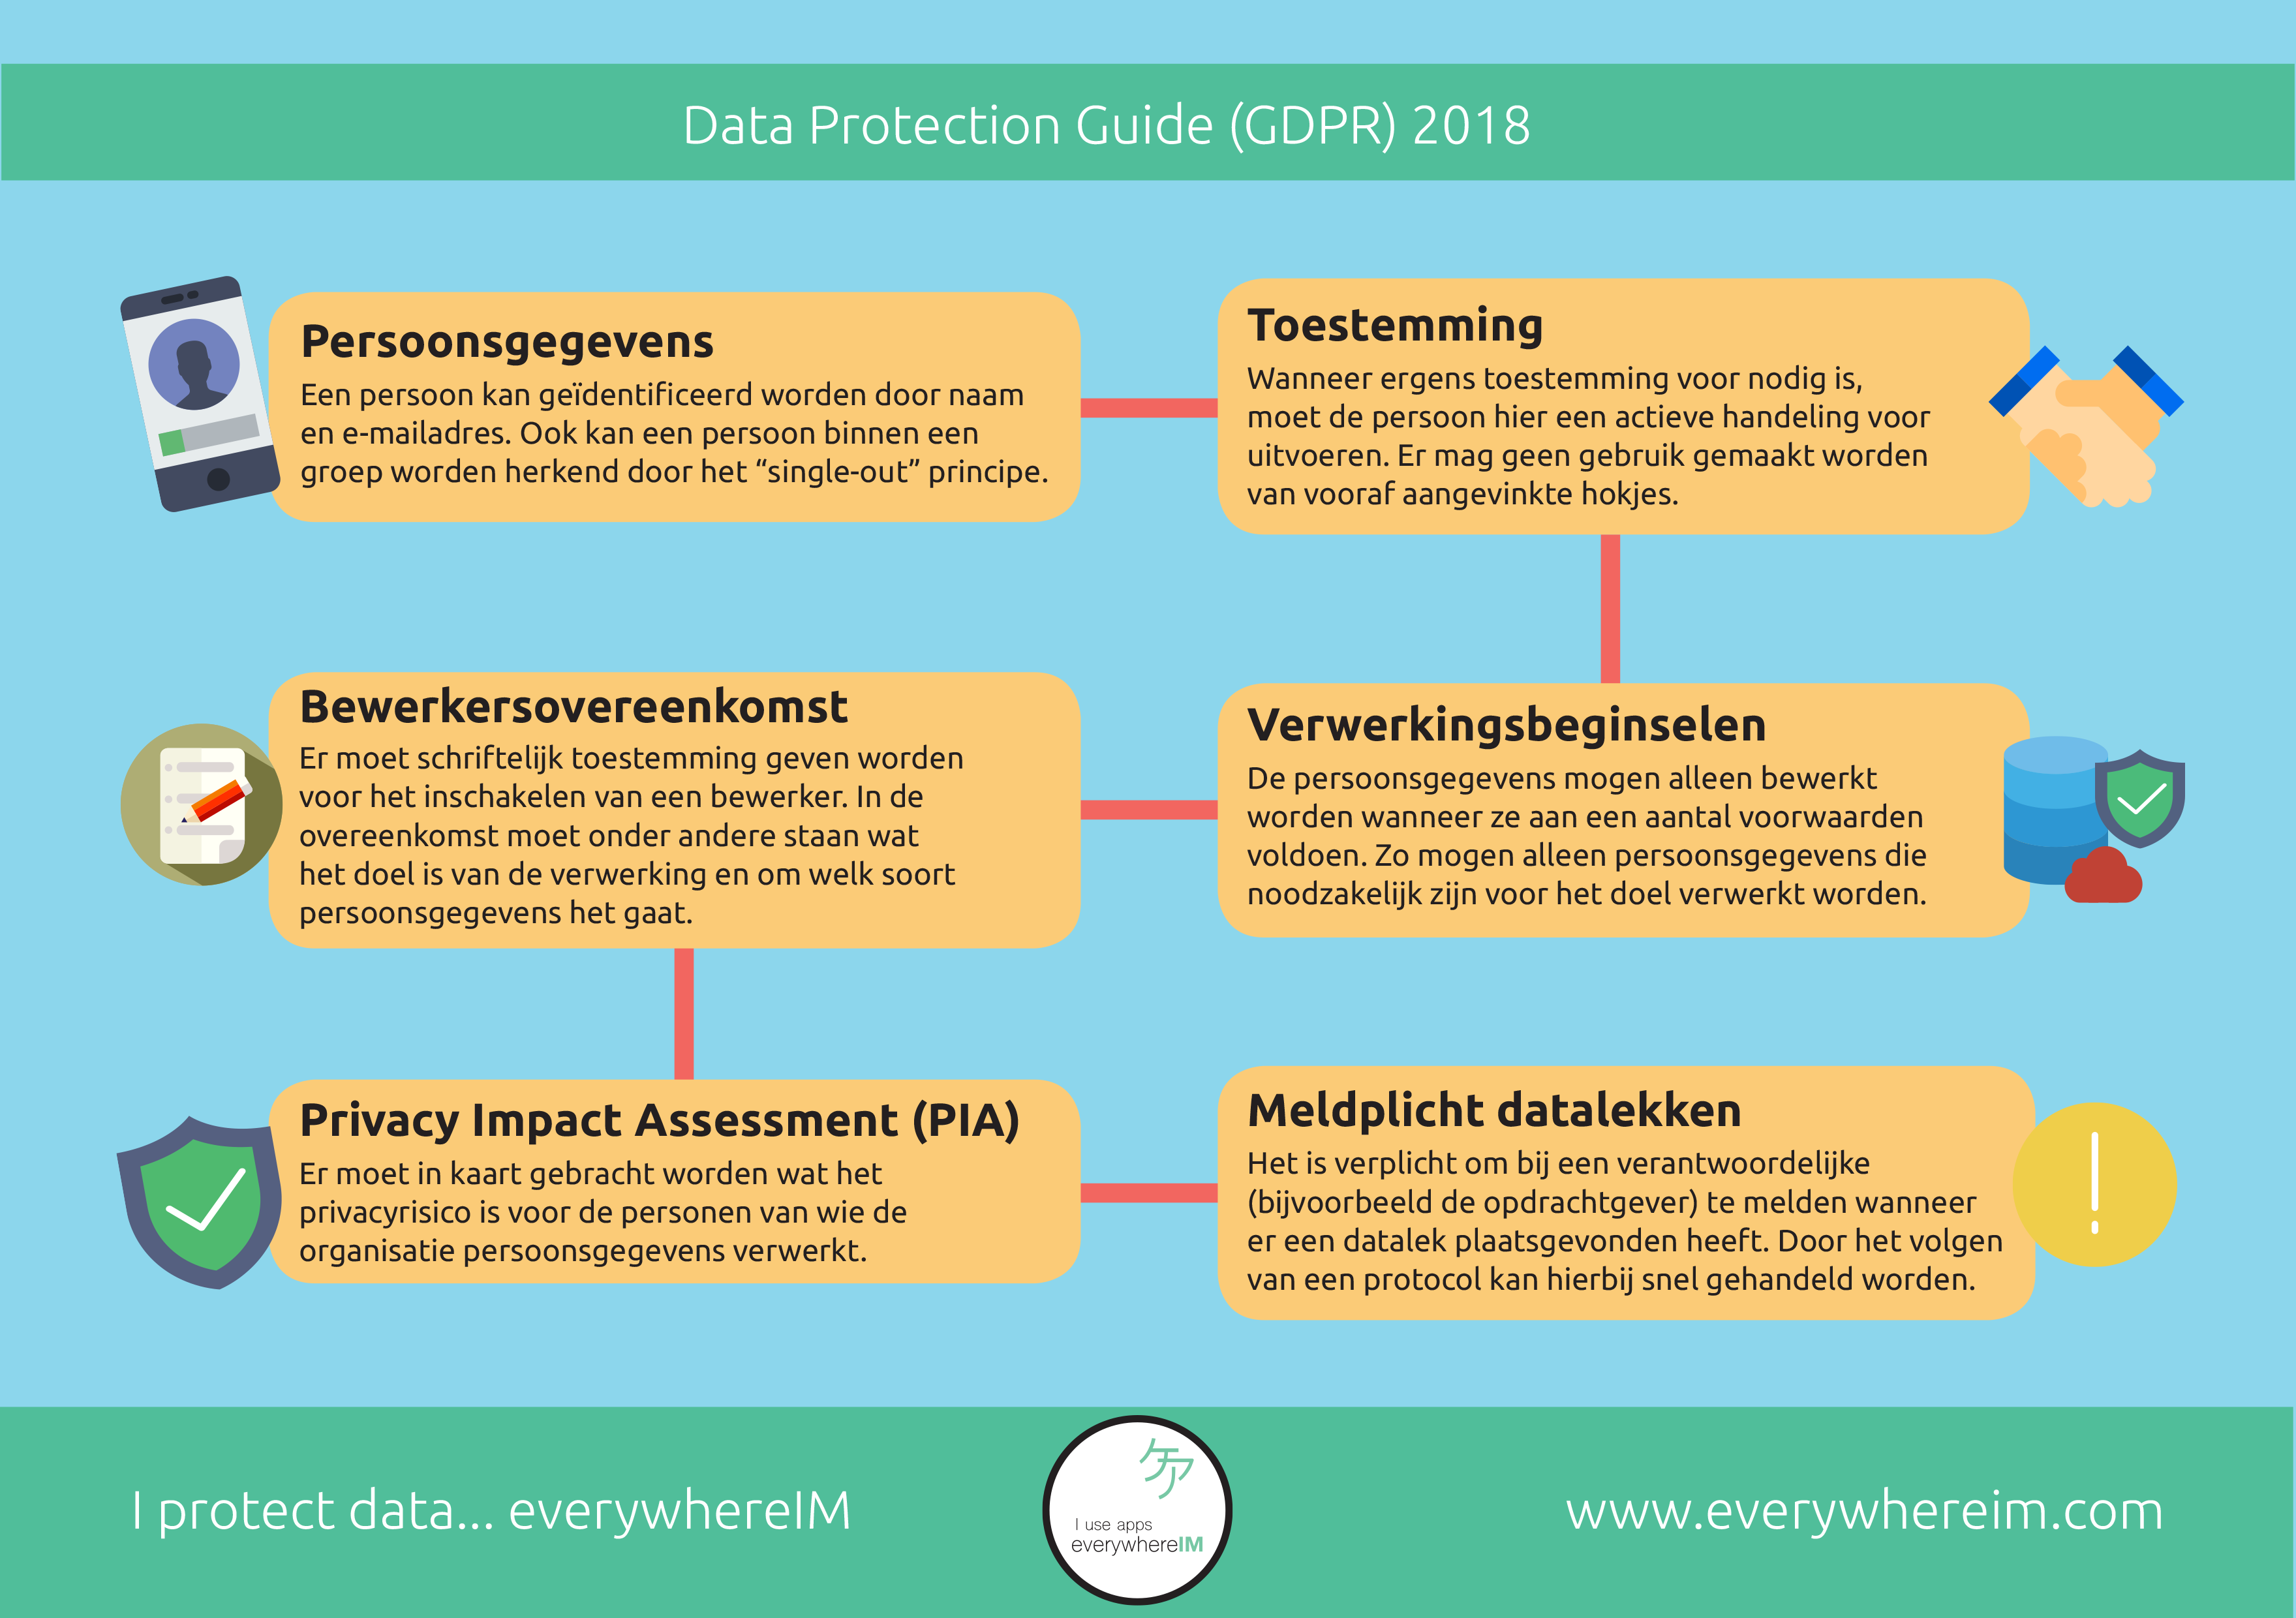 Data Protection Guide